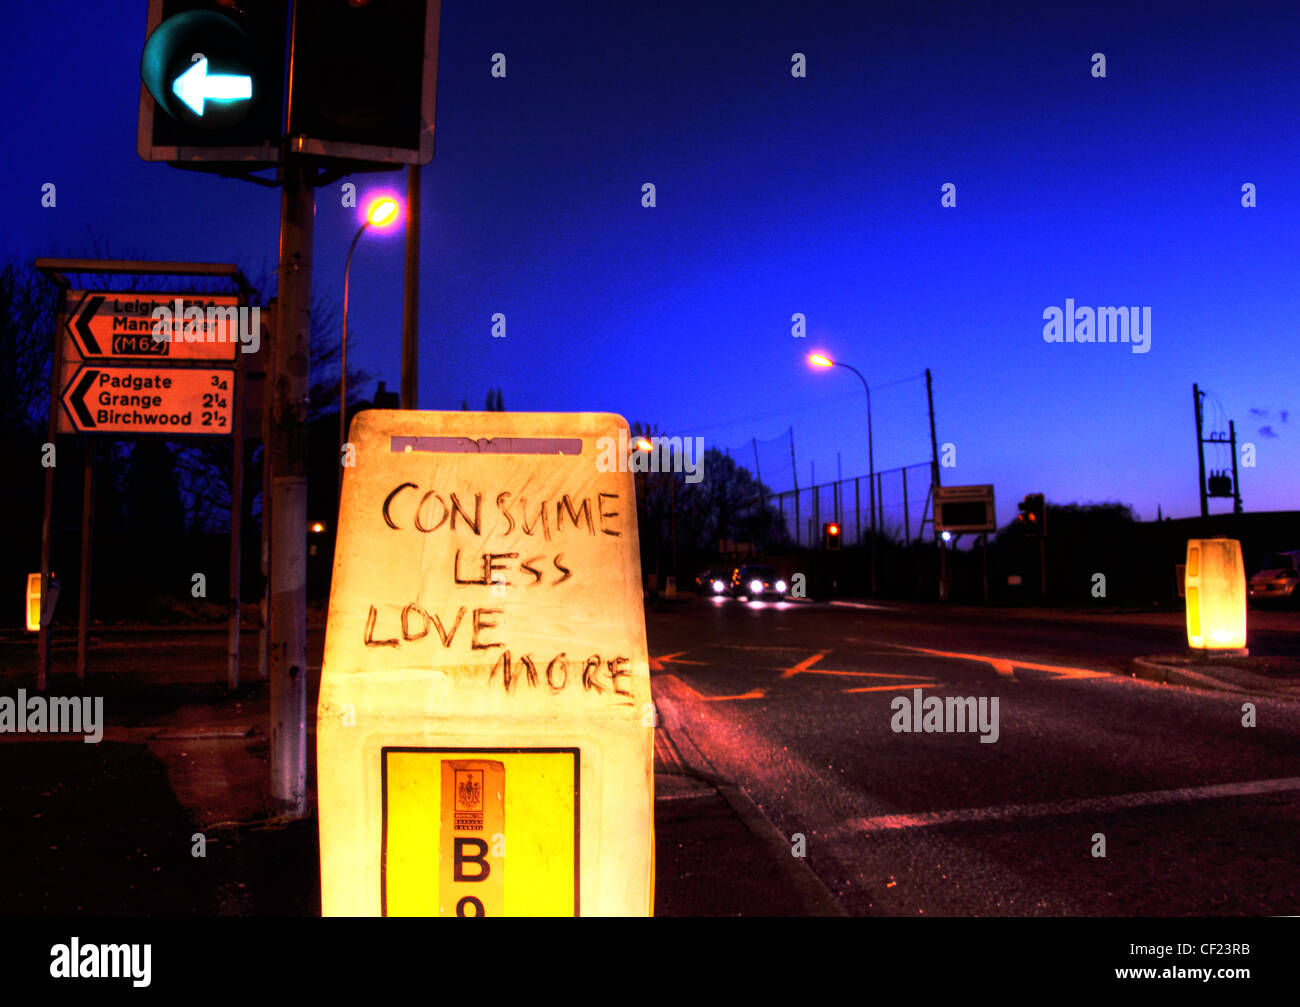 Comsume Less Love More scrawled on a road beacon, Padgate / Birchwood A57 Warrington at Dusk. - Stock Image